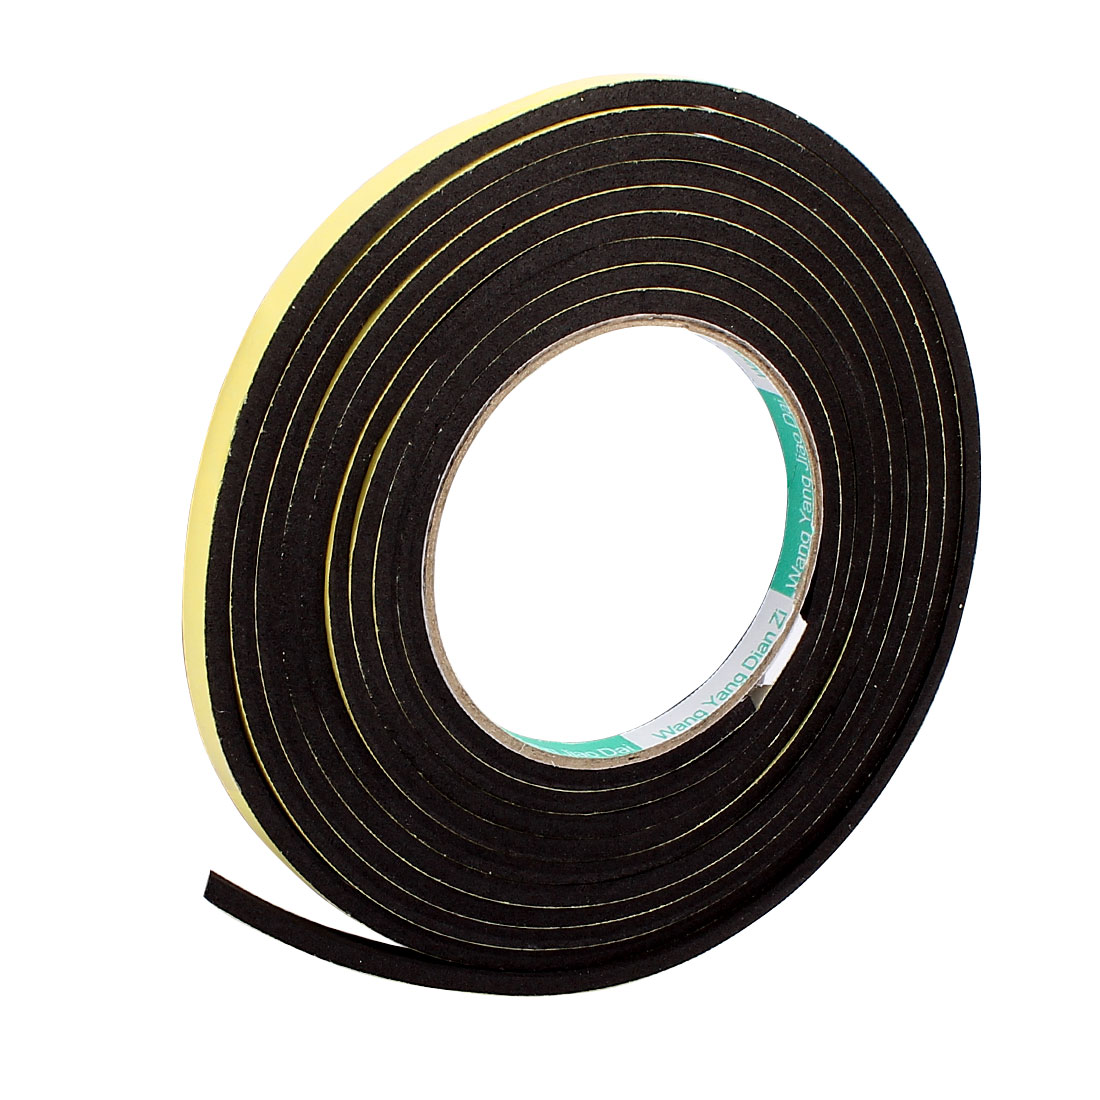 0.8CM Width 3 Meters Length 4MM Thick Single Sided Sealing Shockproof Sponge Tape